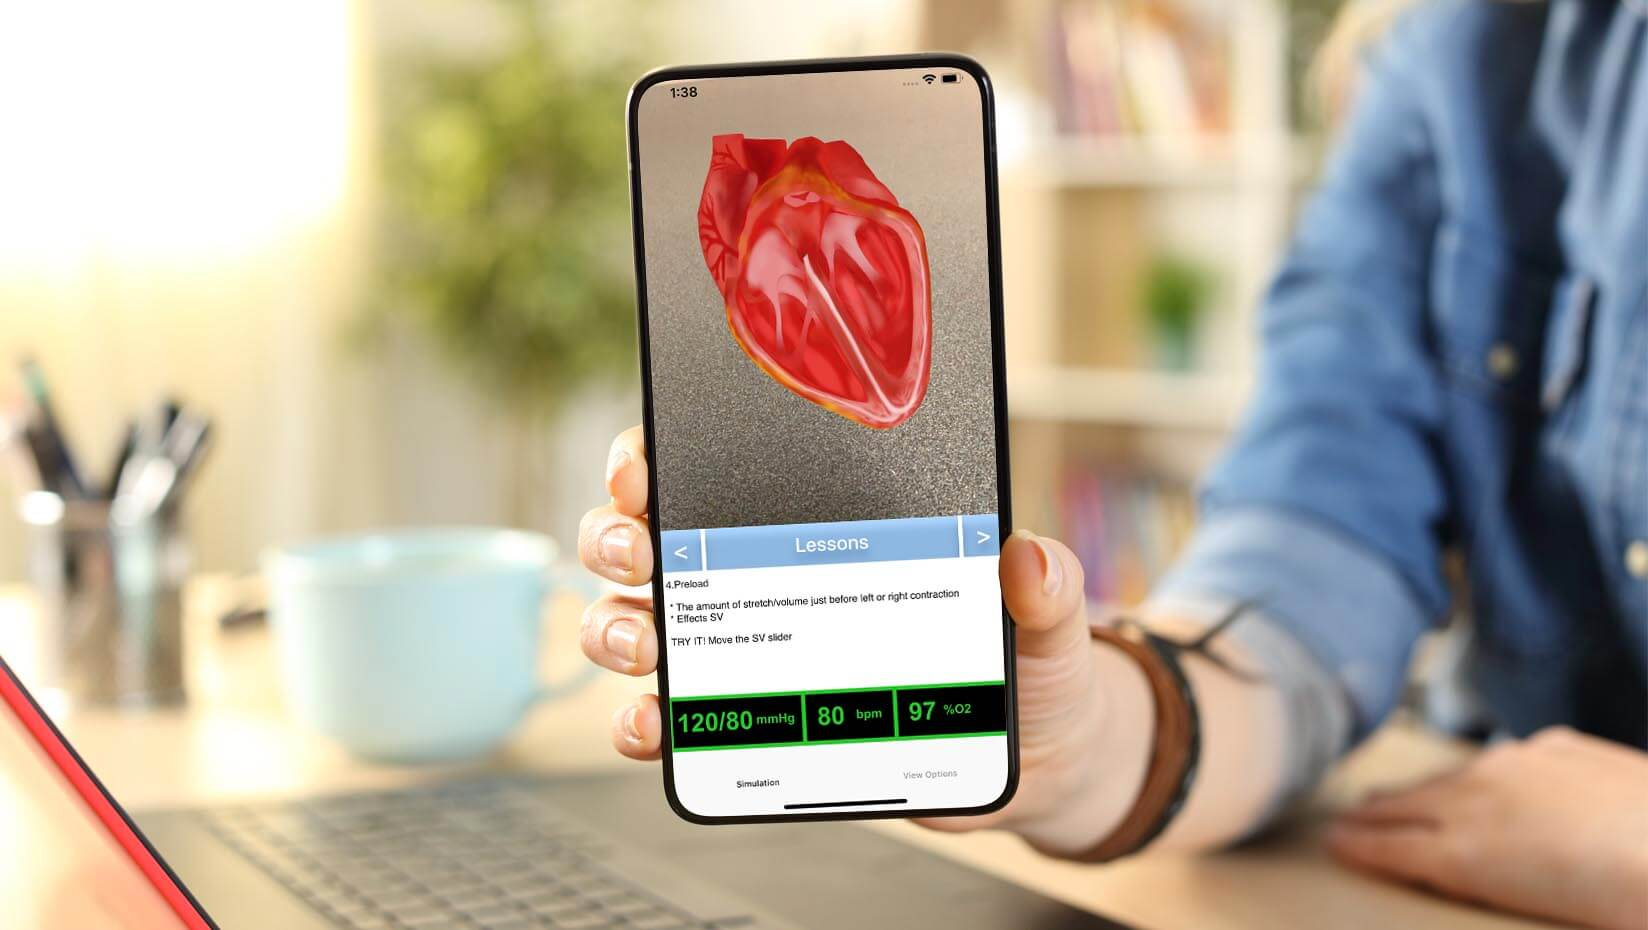 A student holds a smartphone showing an illustration of the human heart